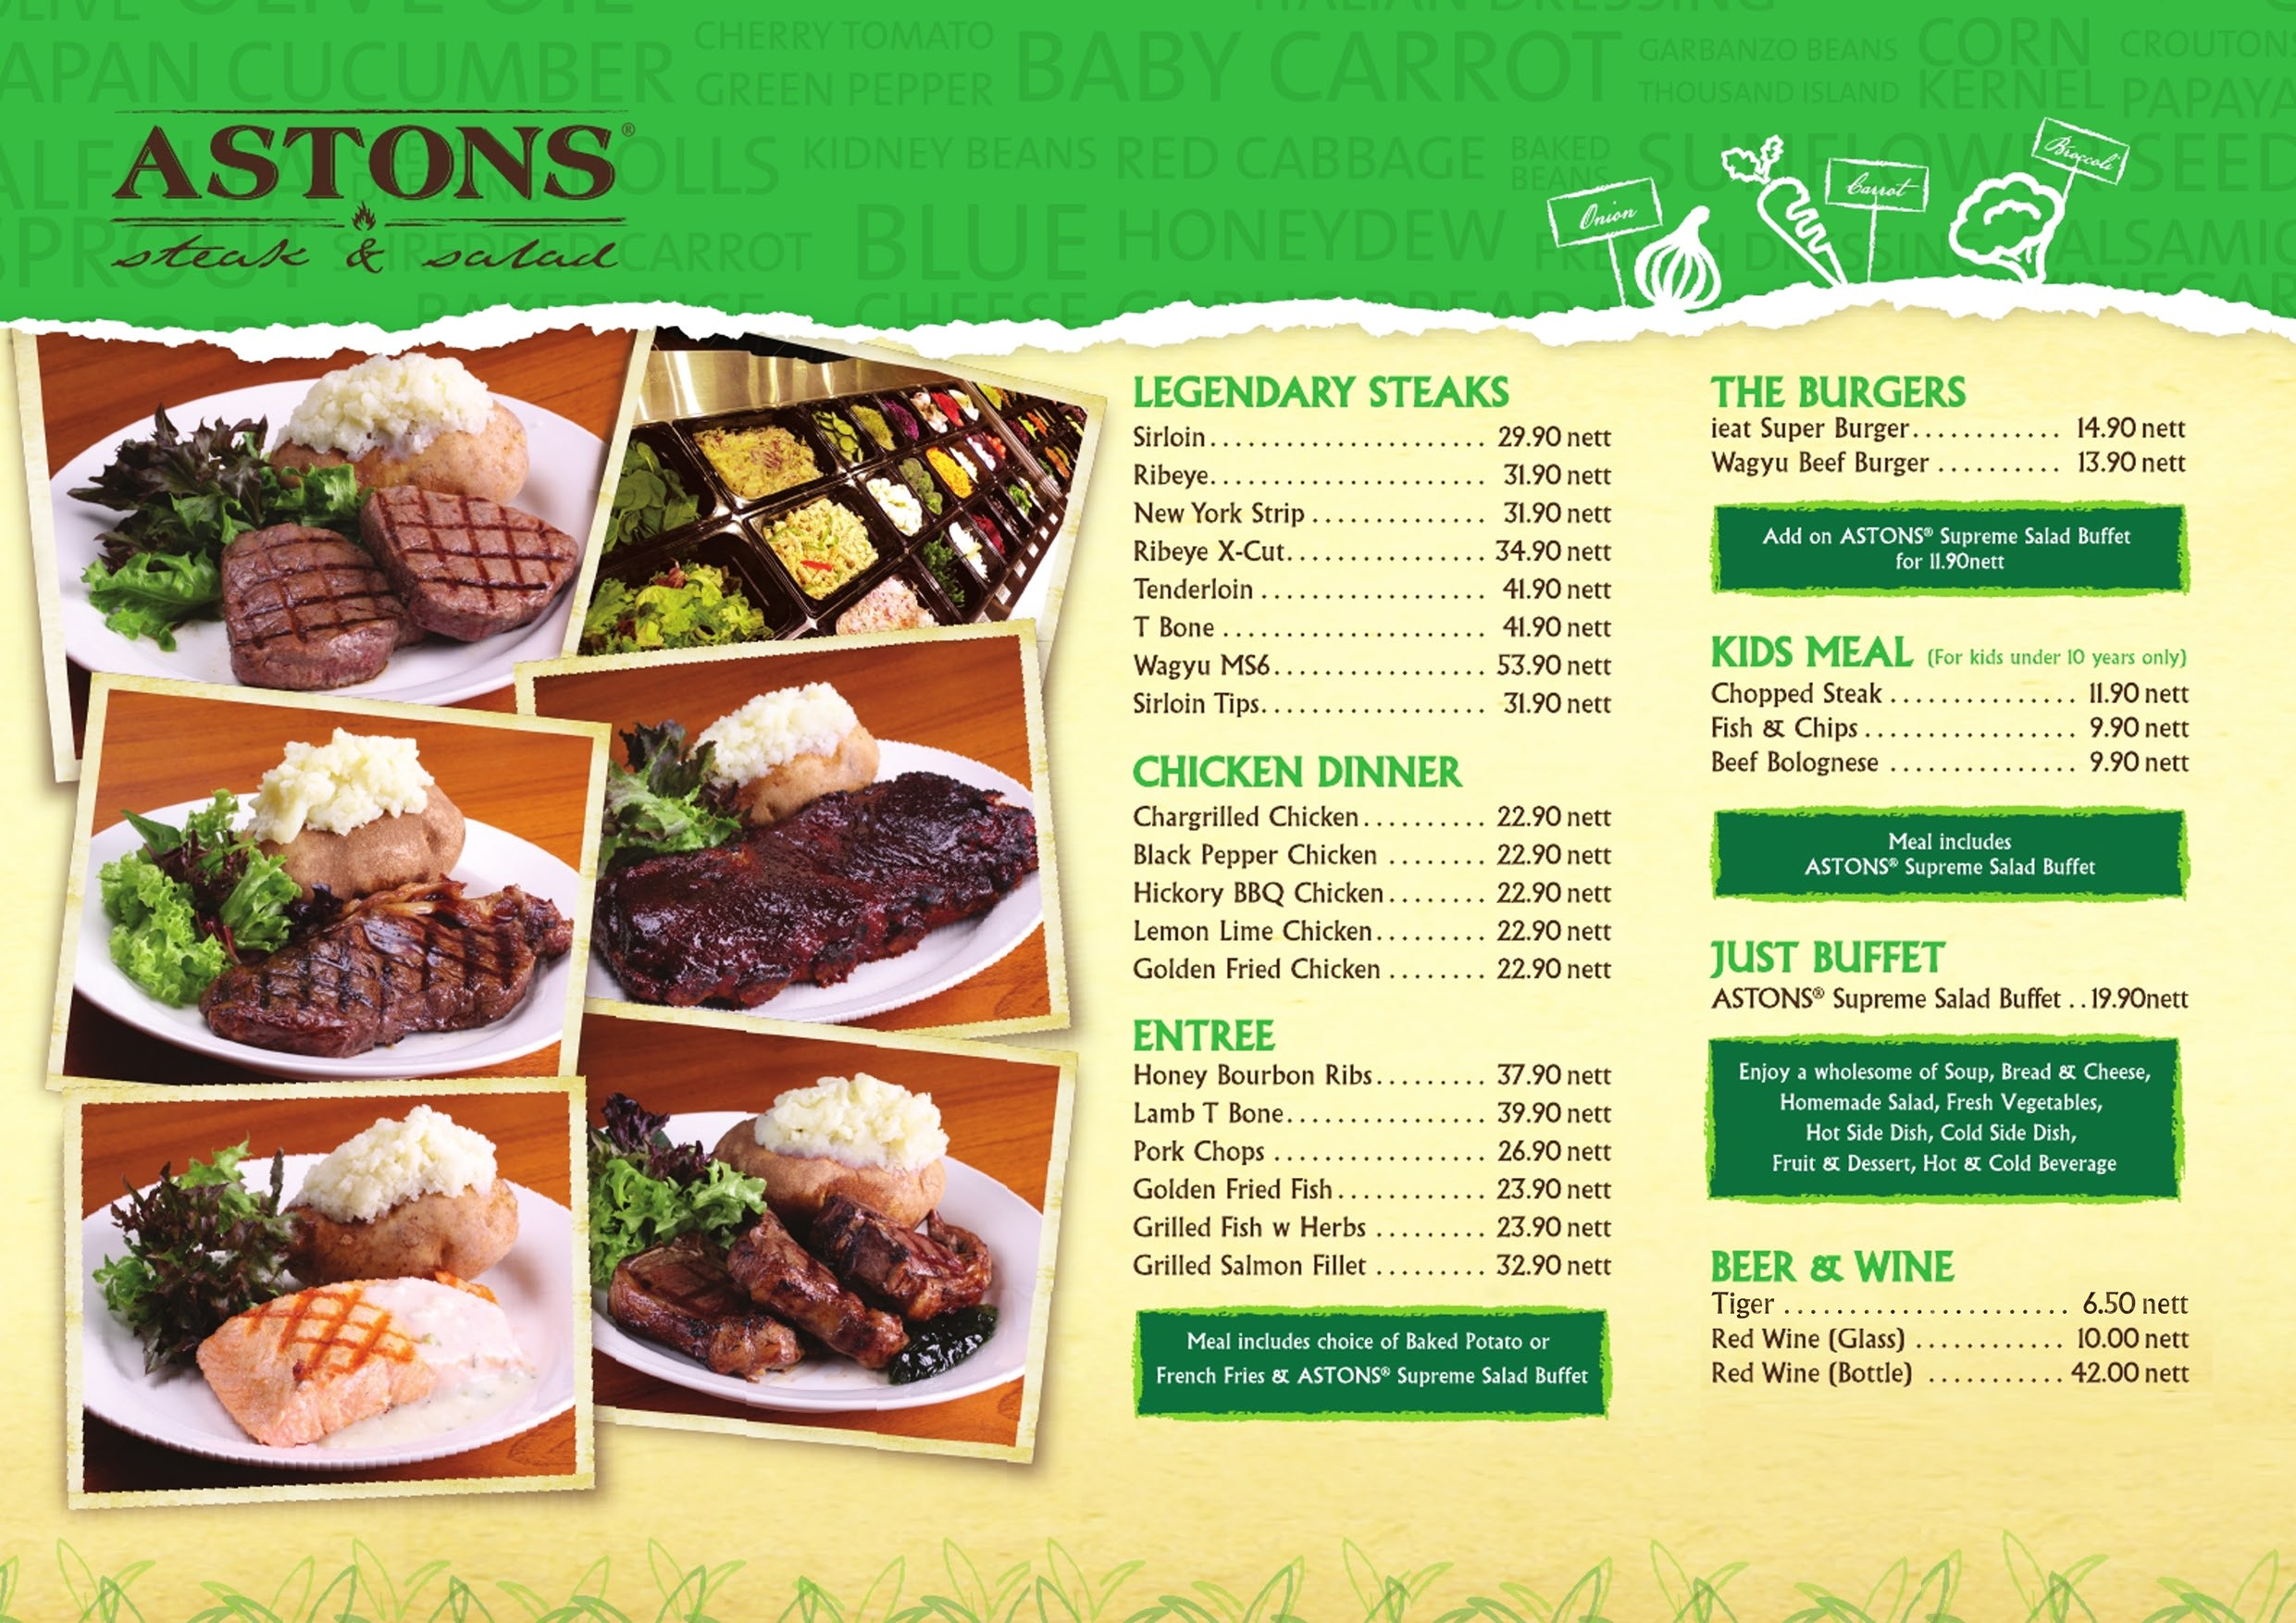 astons steak and salad menu